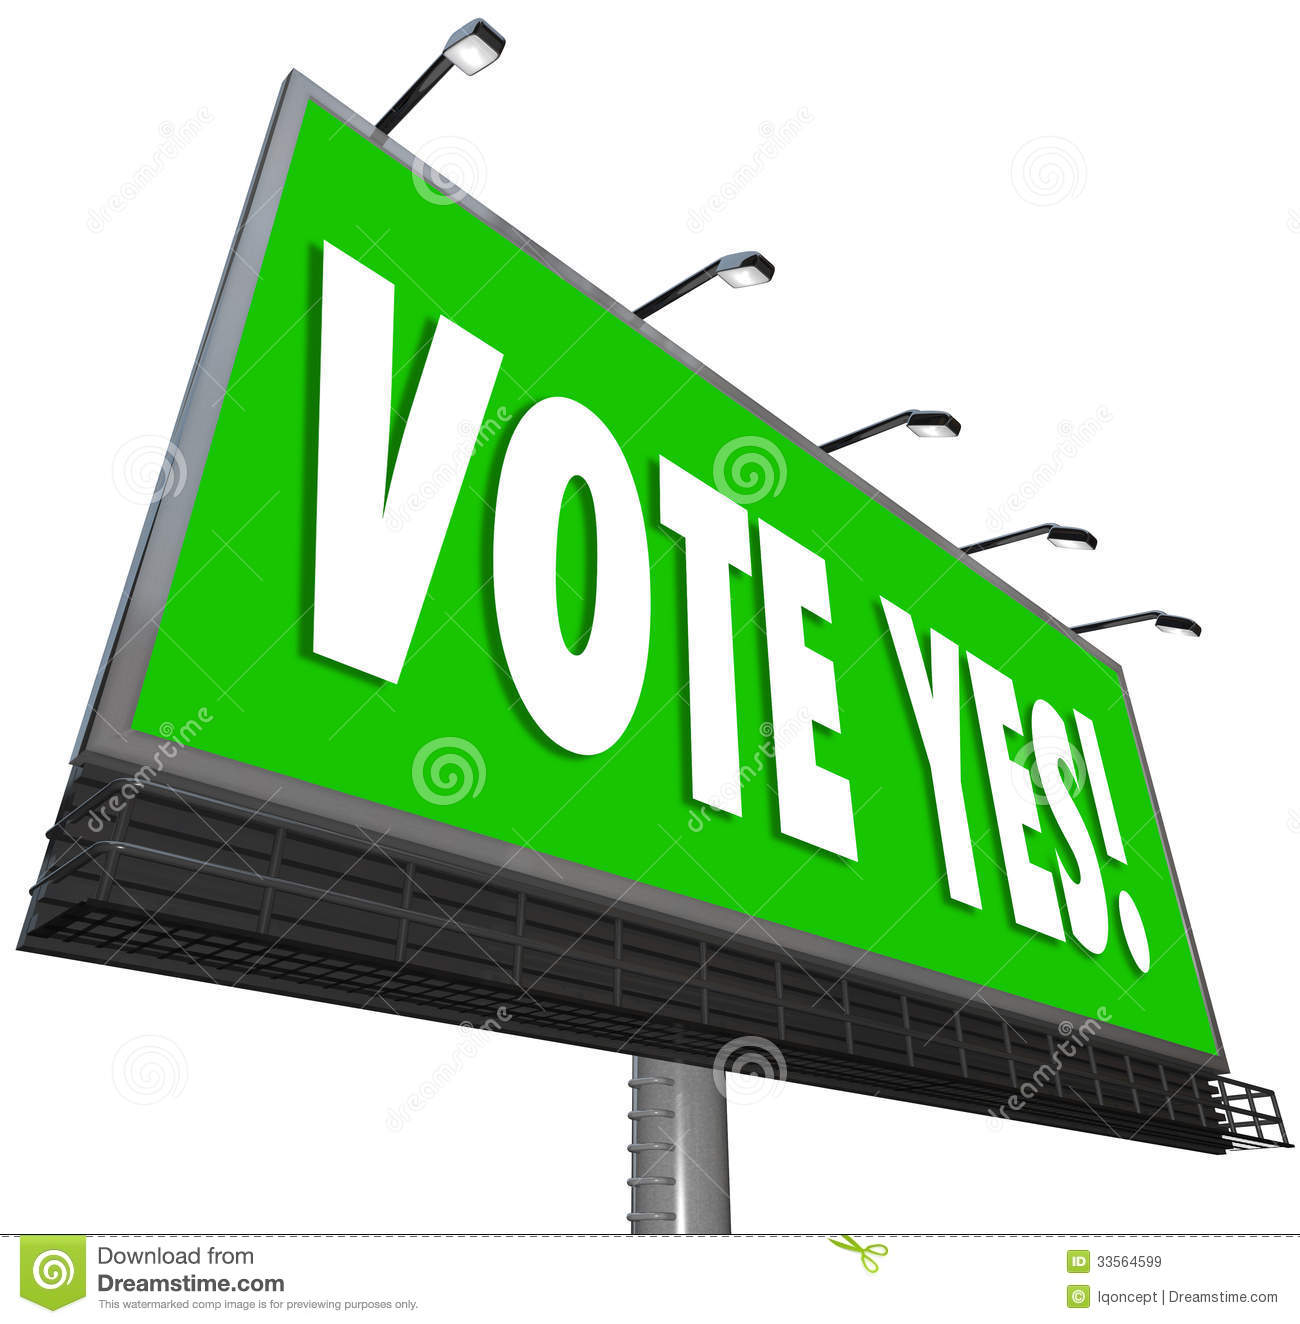 Vote Yes Words On A Big Green Outdoor Billboard To Encourage You